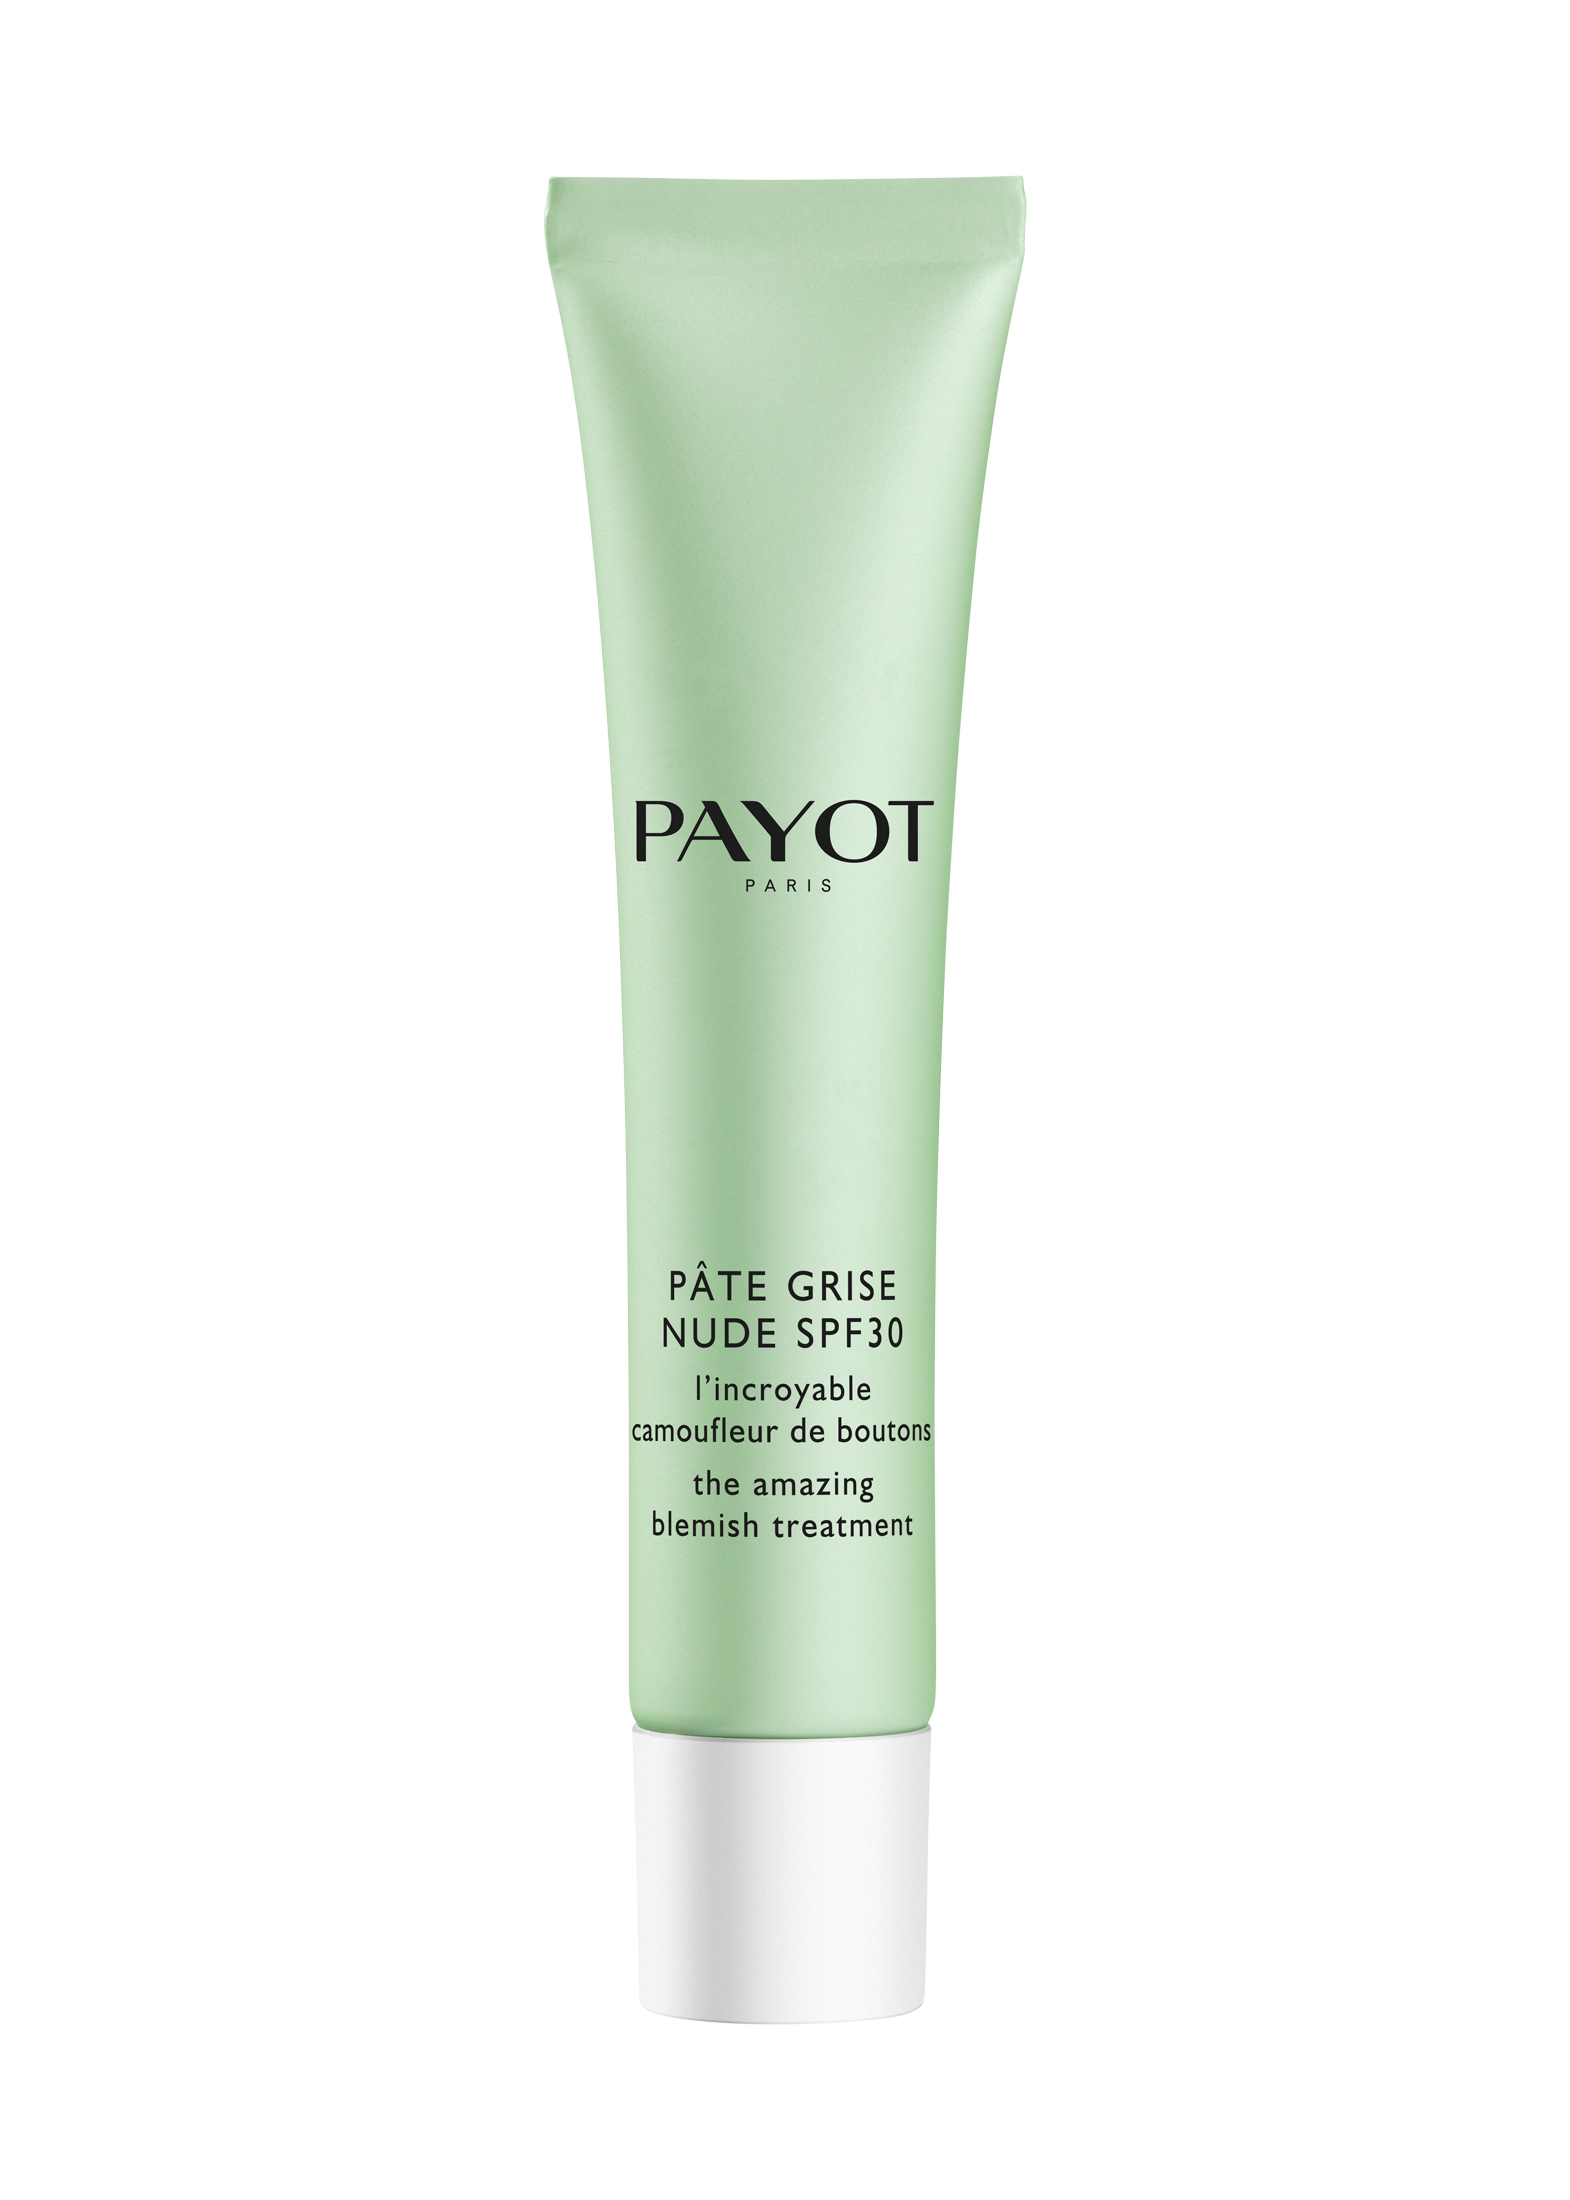 Pate Grise Nude SPF 30, 50ml image number 0